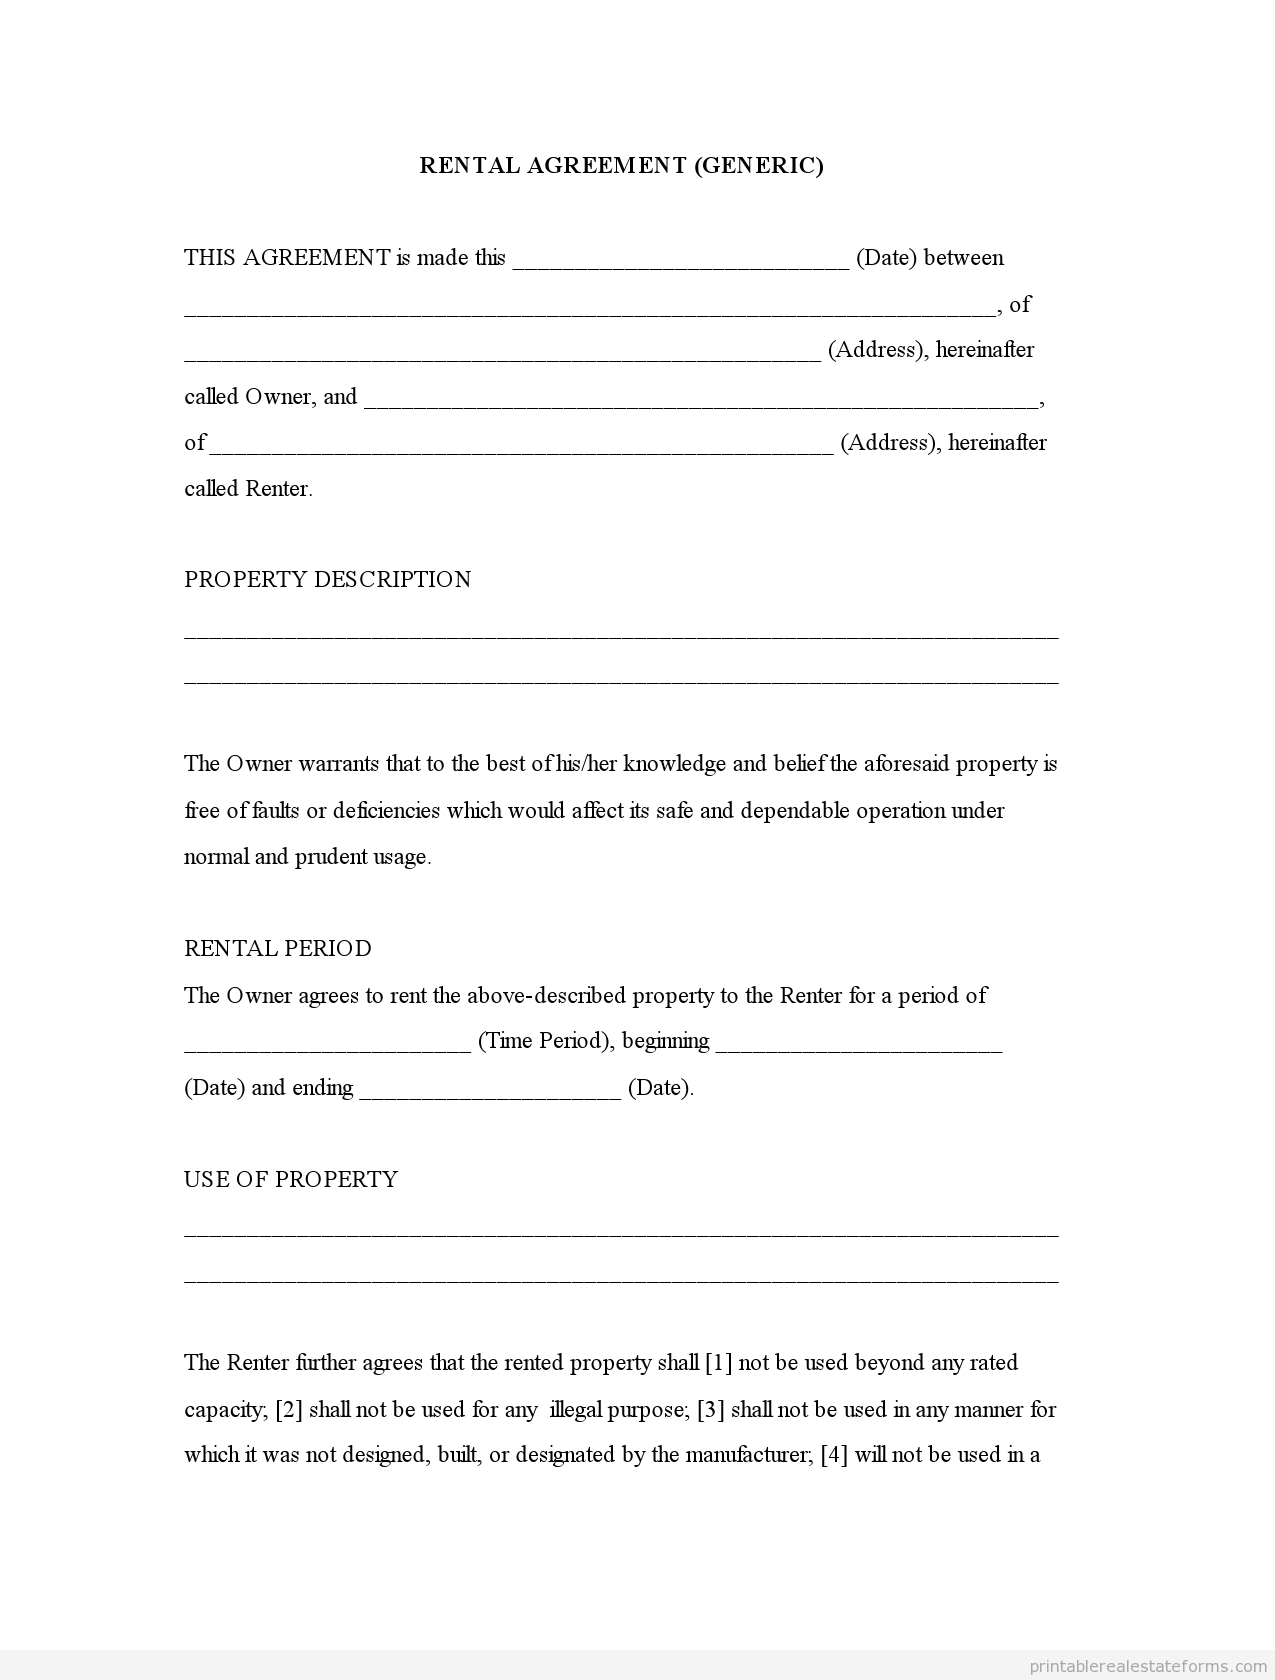 free lease template - generic template rental agreement forms free printable